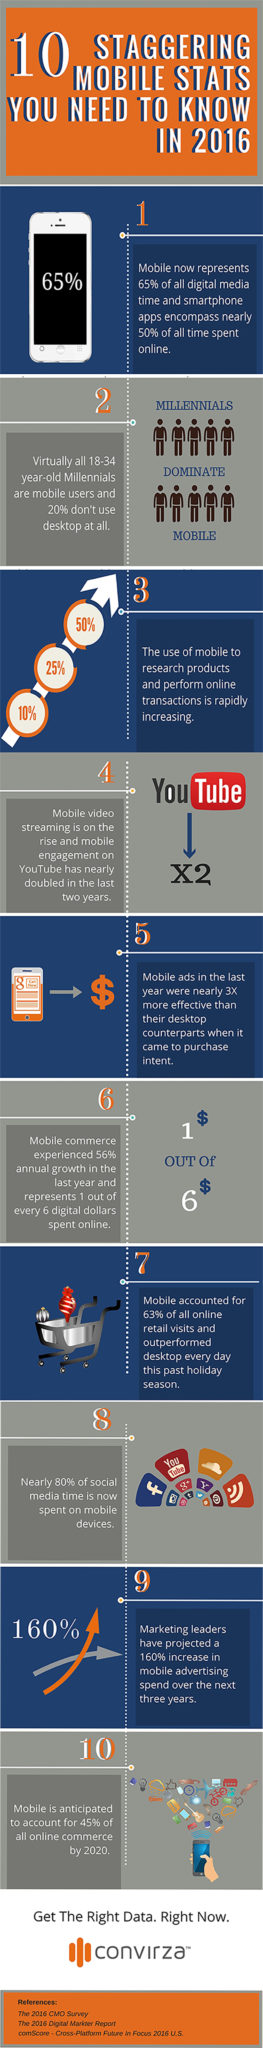 mobile usage and marketing in 2016